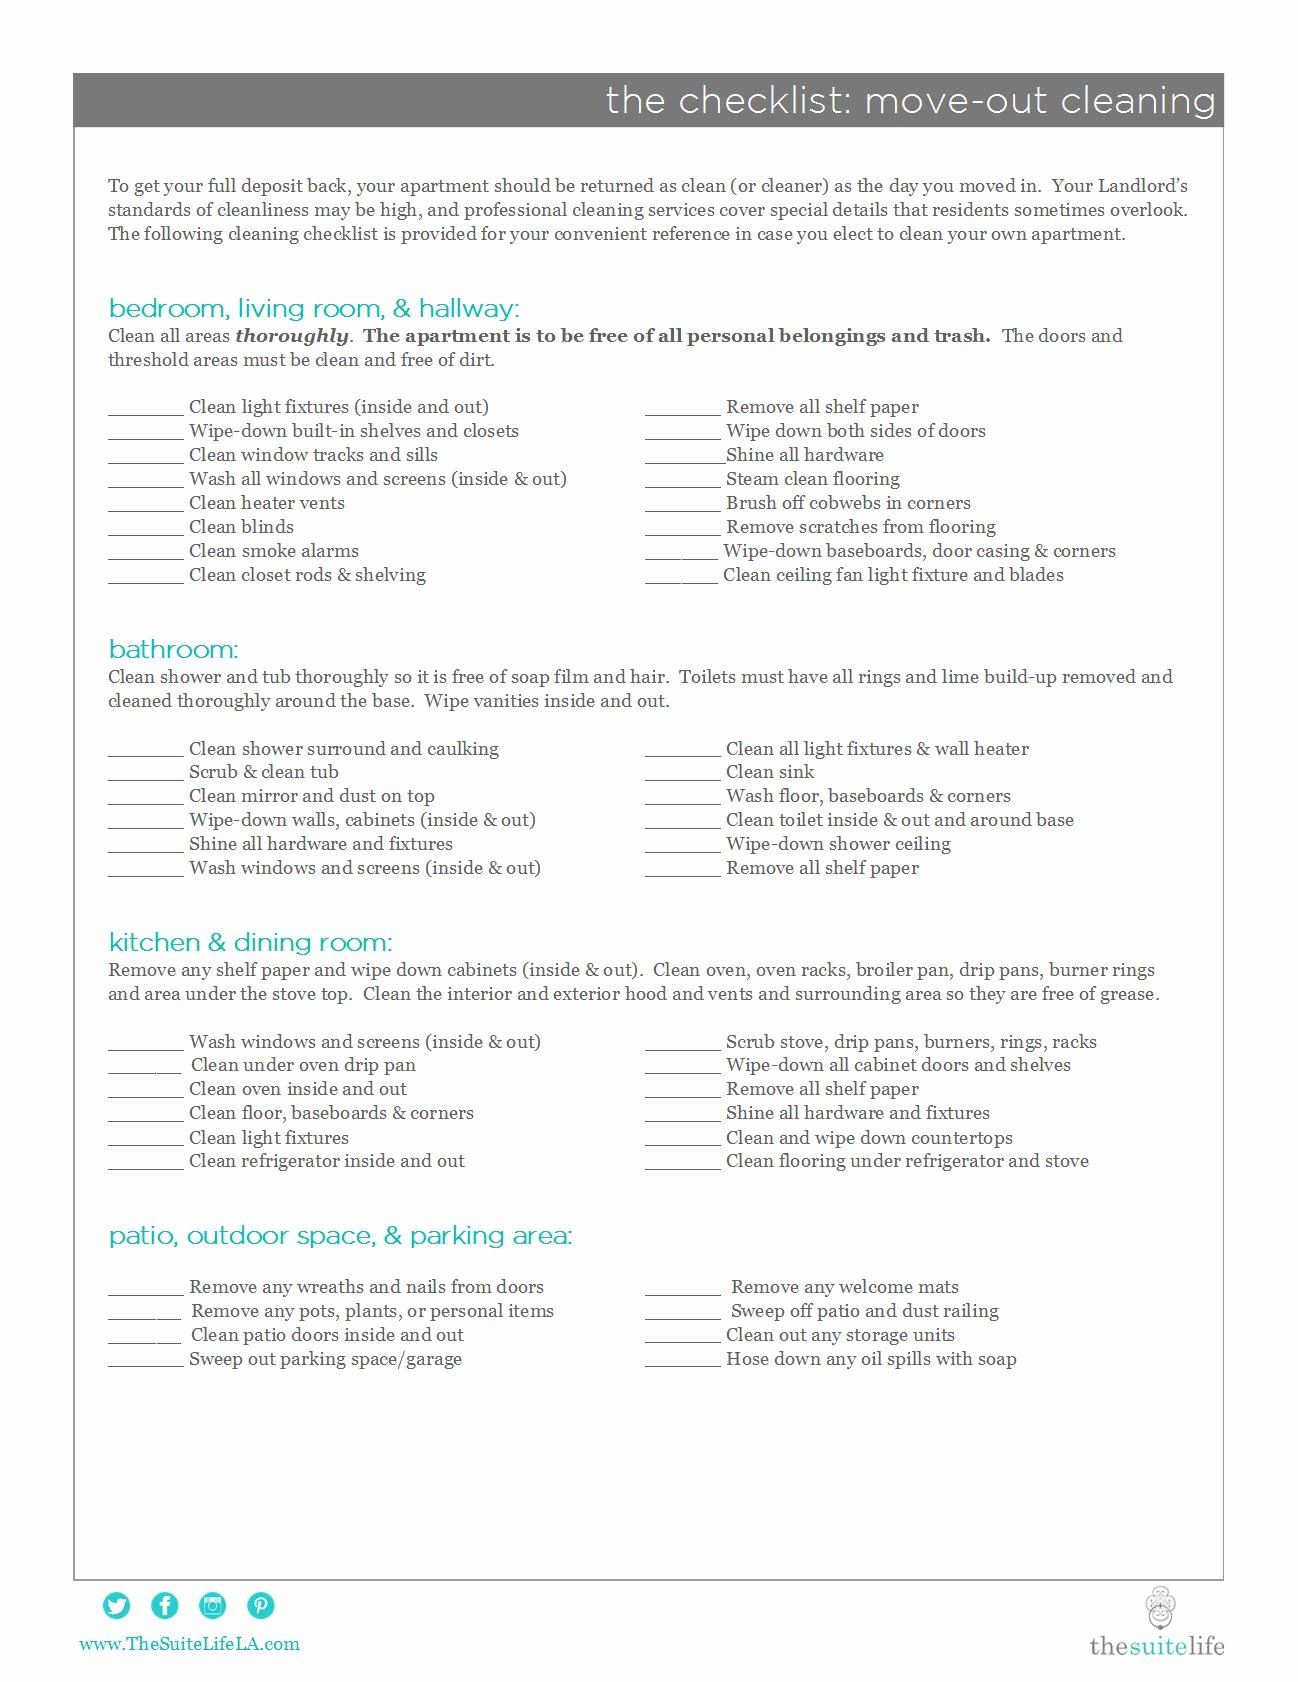 Move Out Cleaning Checklist Template Beautiful the Suite Life Move Out Cleaning Checklist